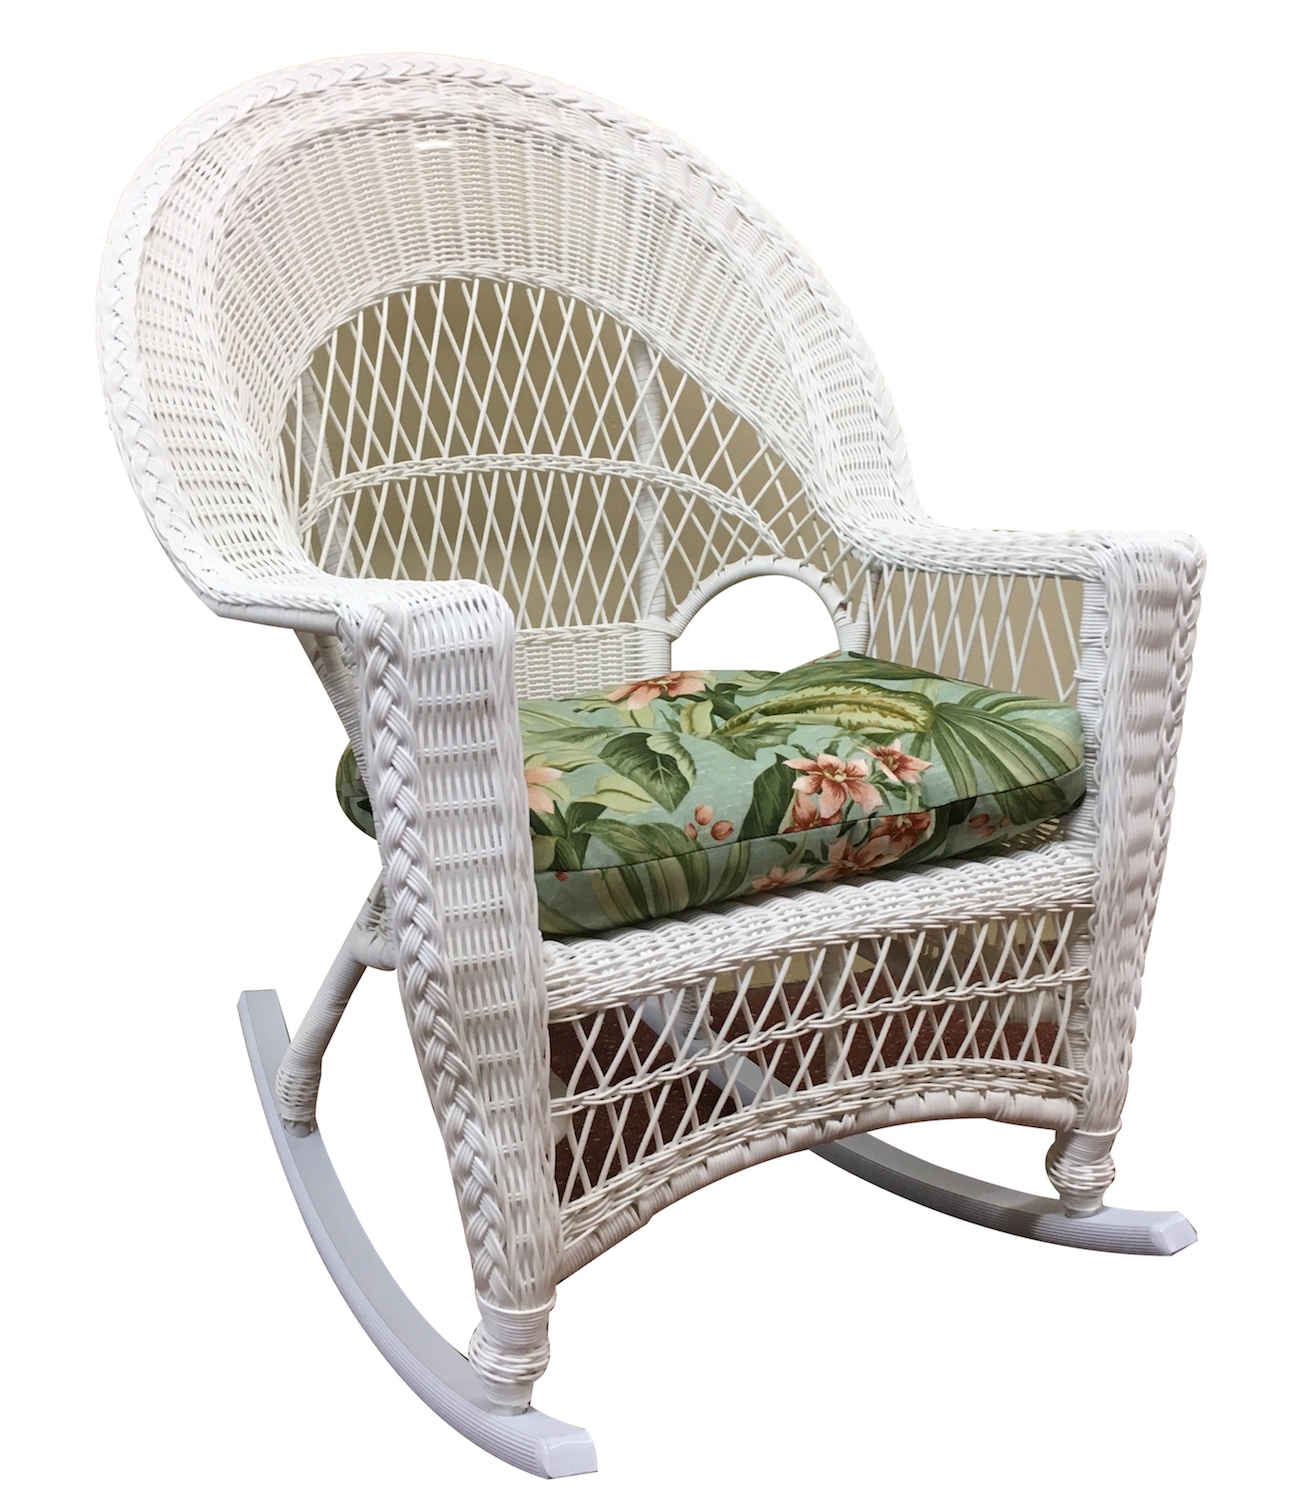 Wicker Rocking Chair Design Outdoor Swivel Rockers Black Agreeable With Newest Resin Wicker Rocking Chairs (View 15 of 15)